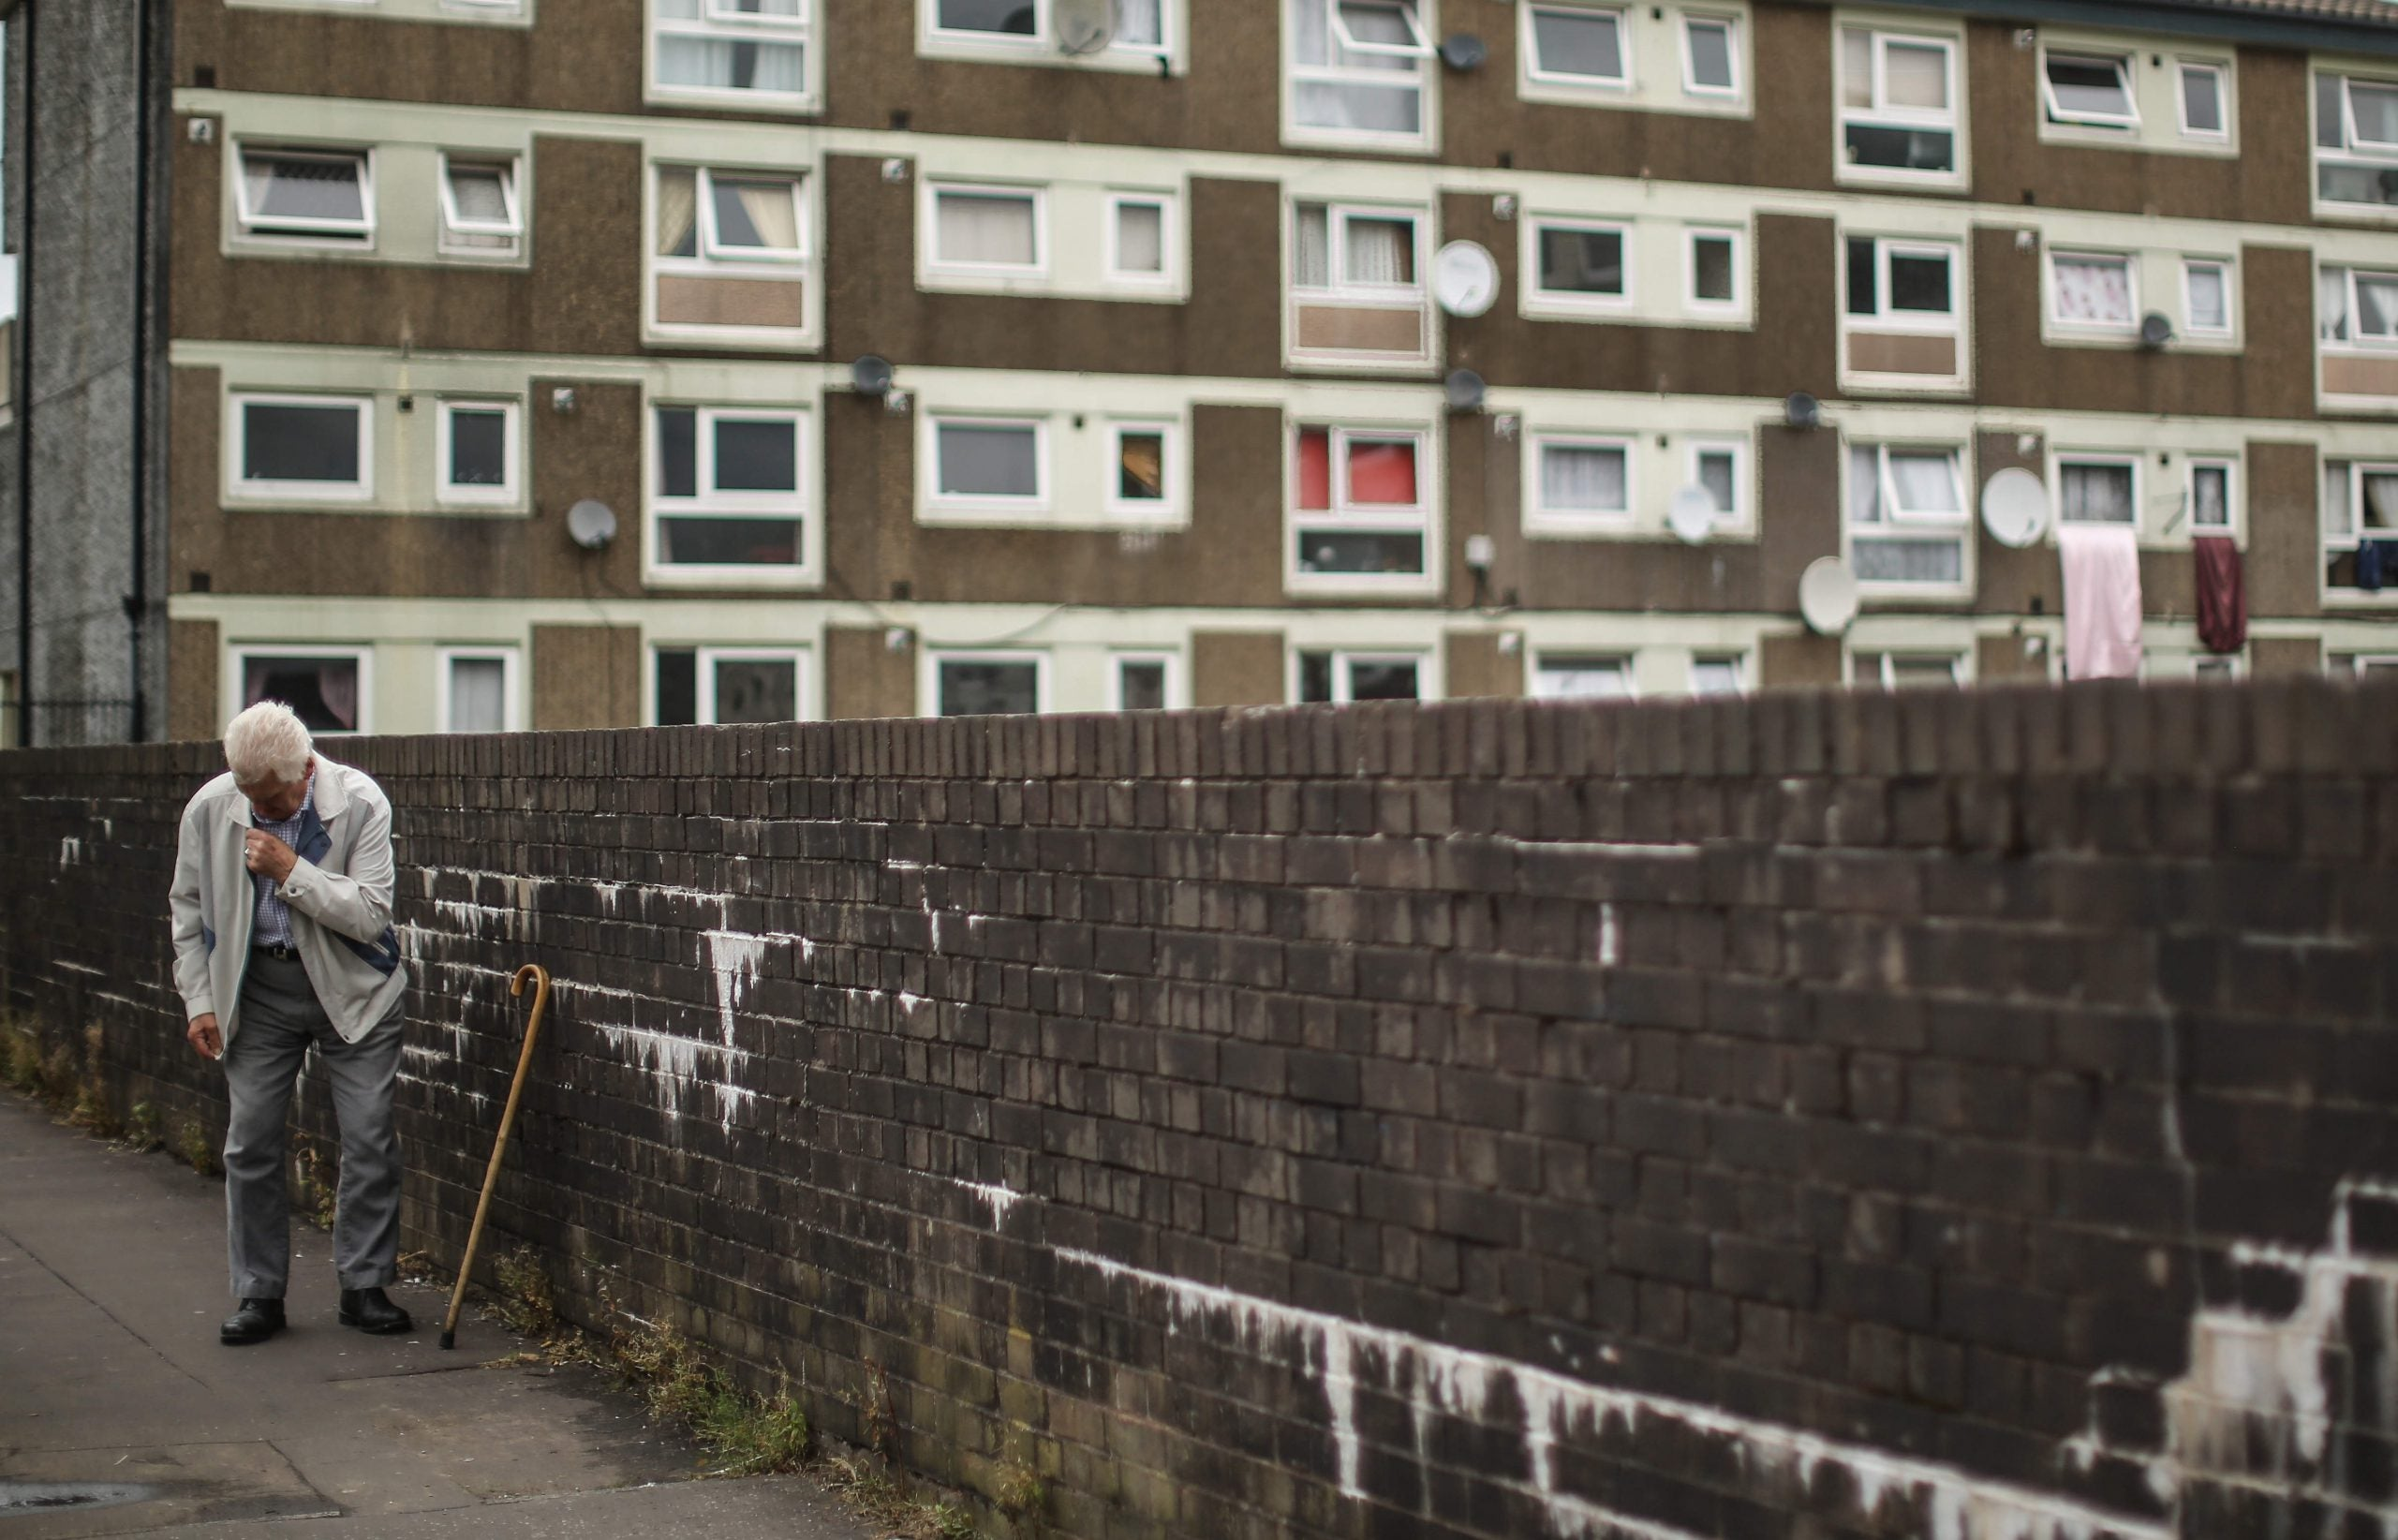 Crumbling Britain: thousands like my elderly aunt suffer as the public realm decays